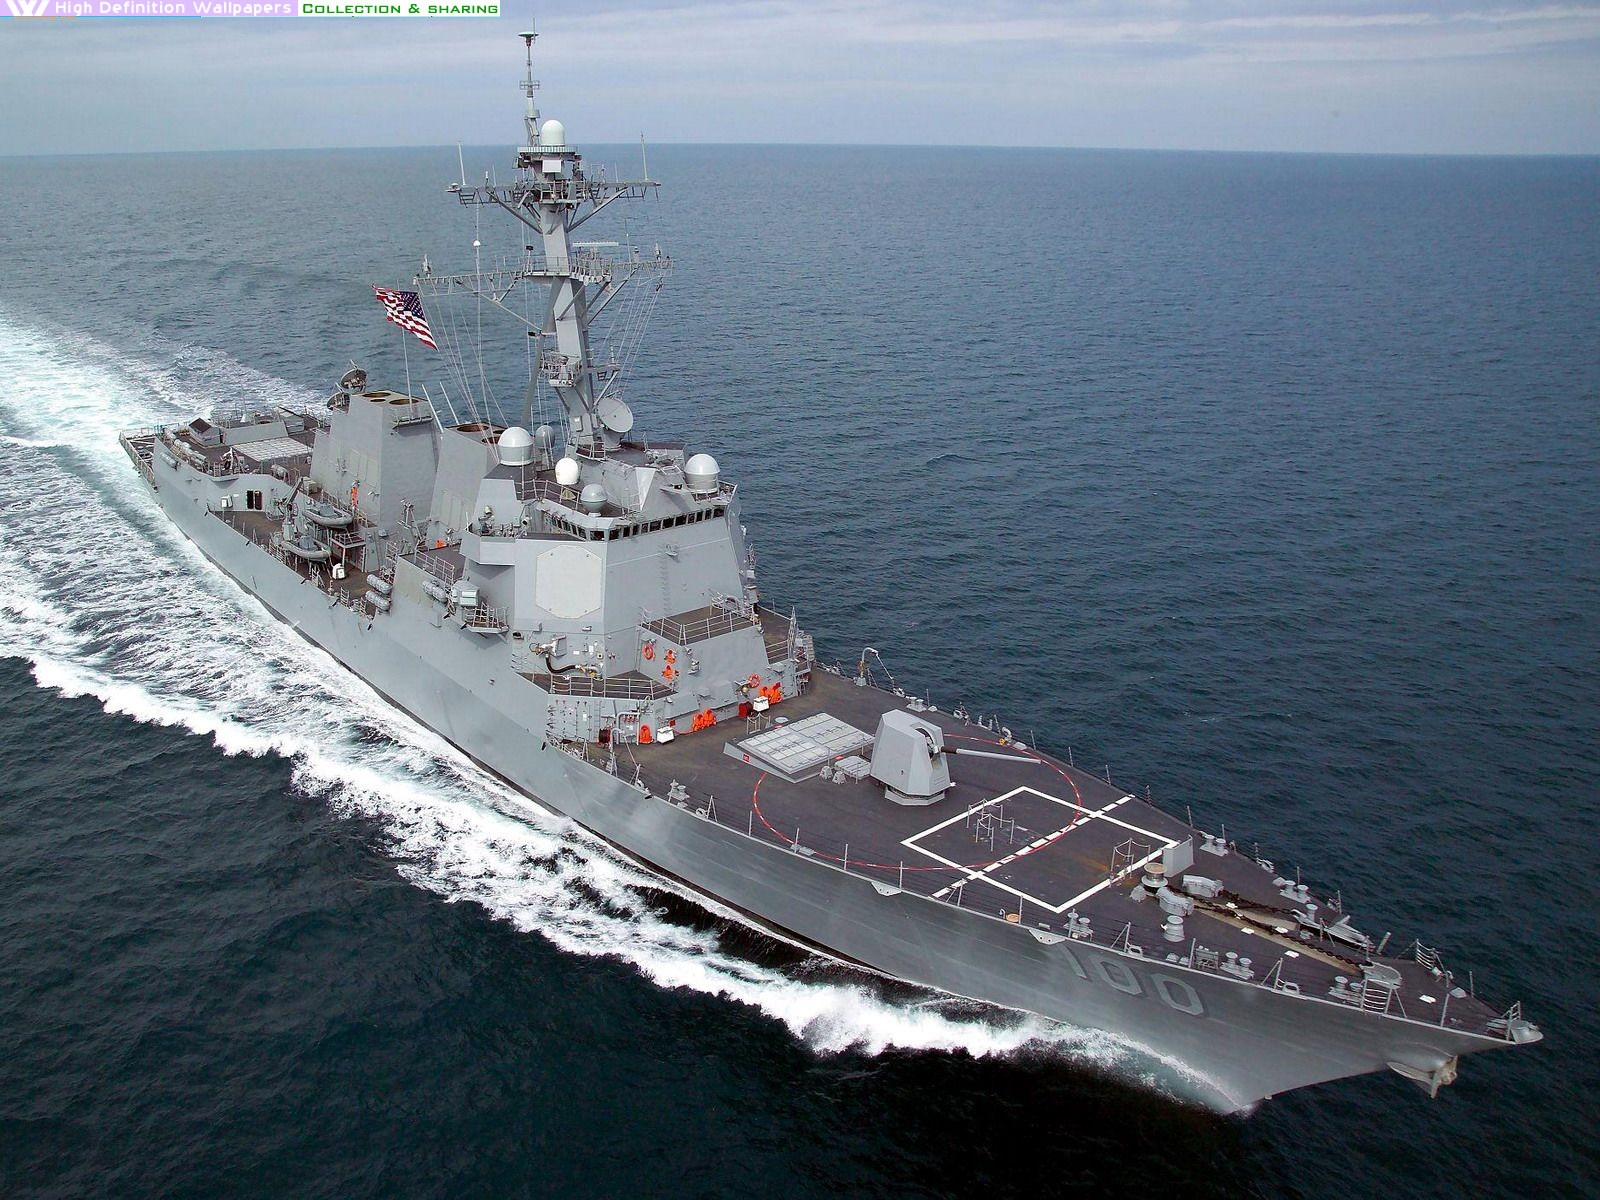 US Navy Arleigh Burke Class Guided Missile Destroyer wallpaper 1600x1200